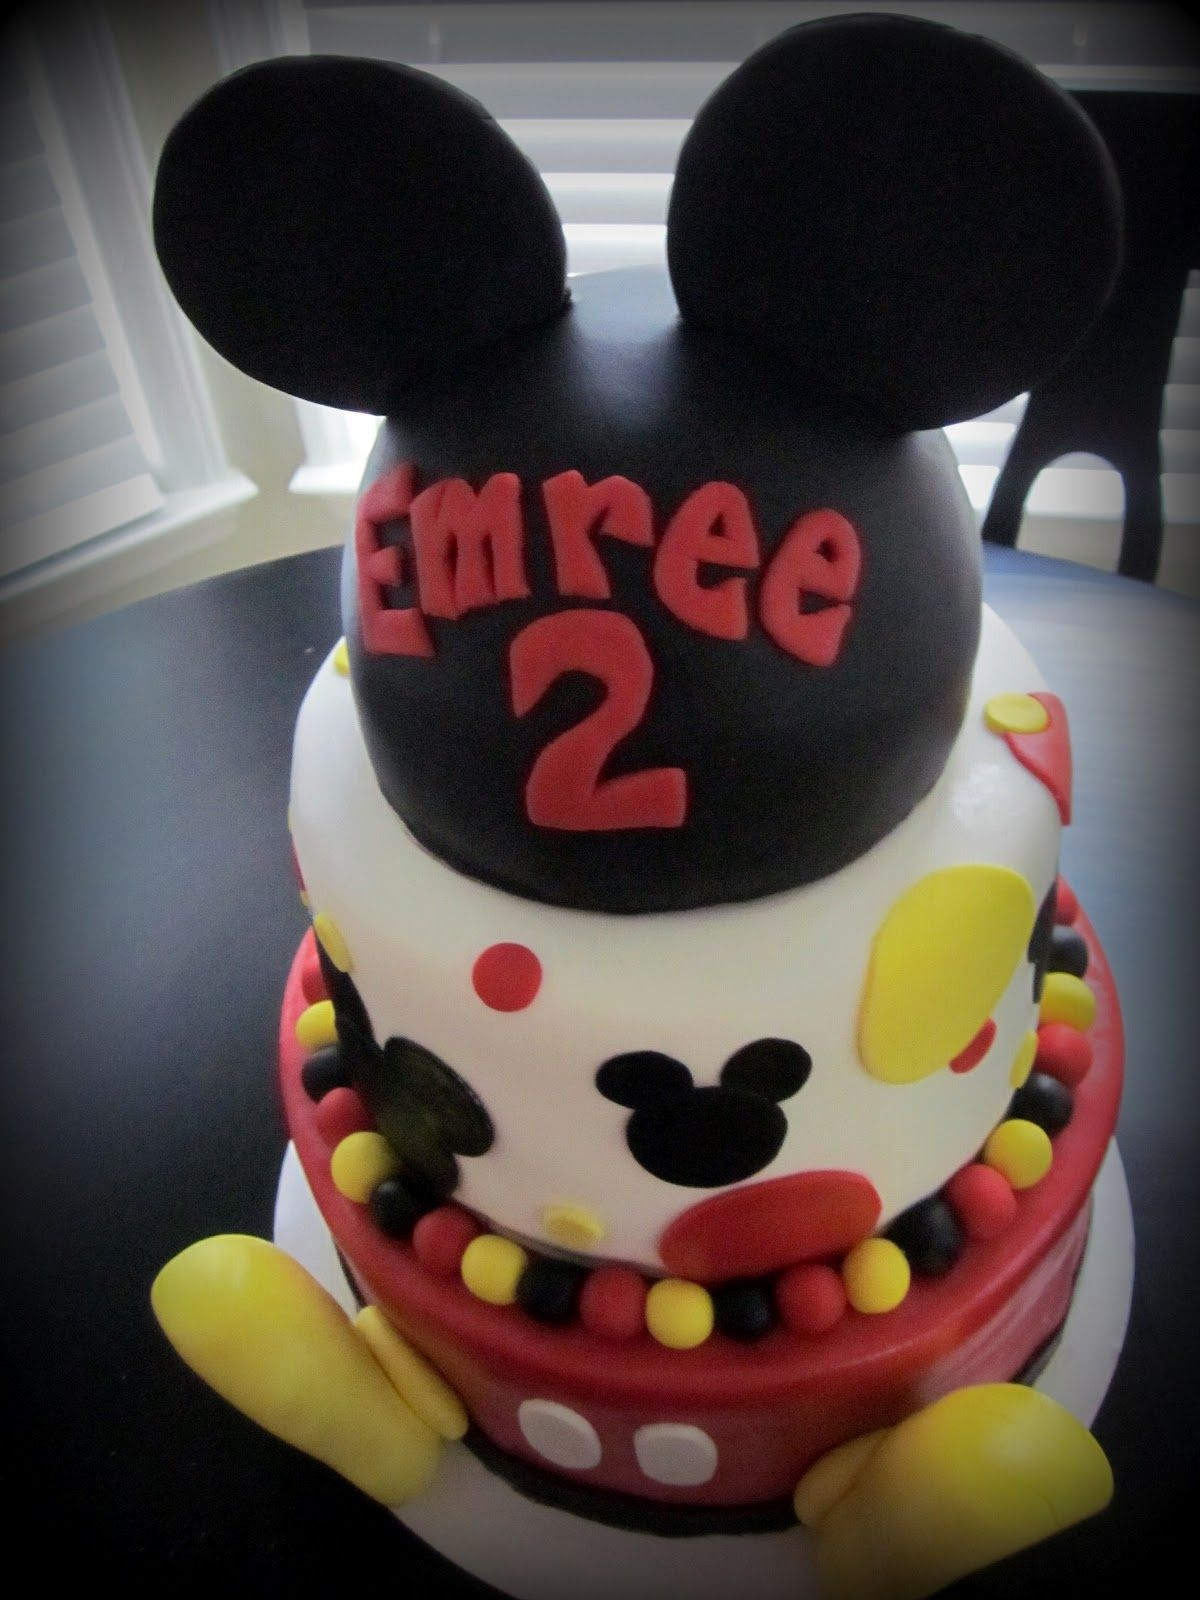 Darlin designs mickey mouse birthday cake mickey mouse